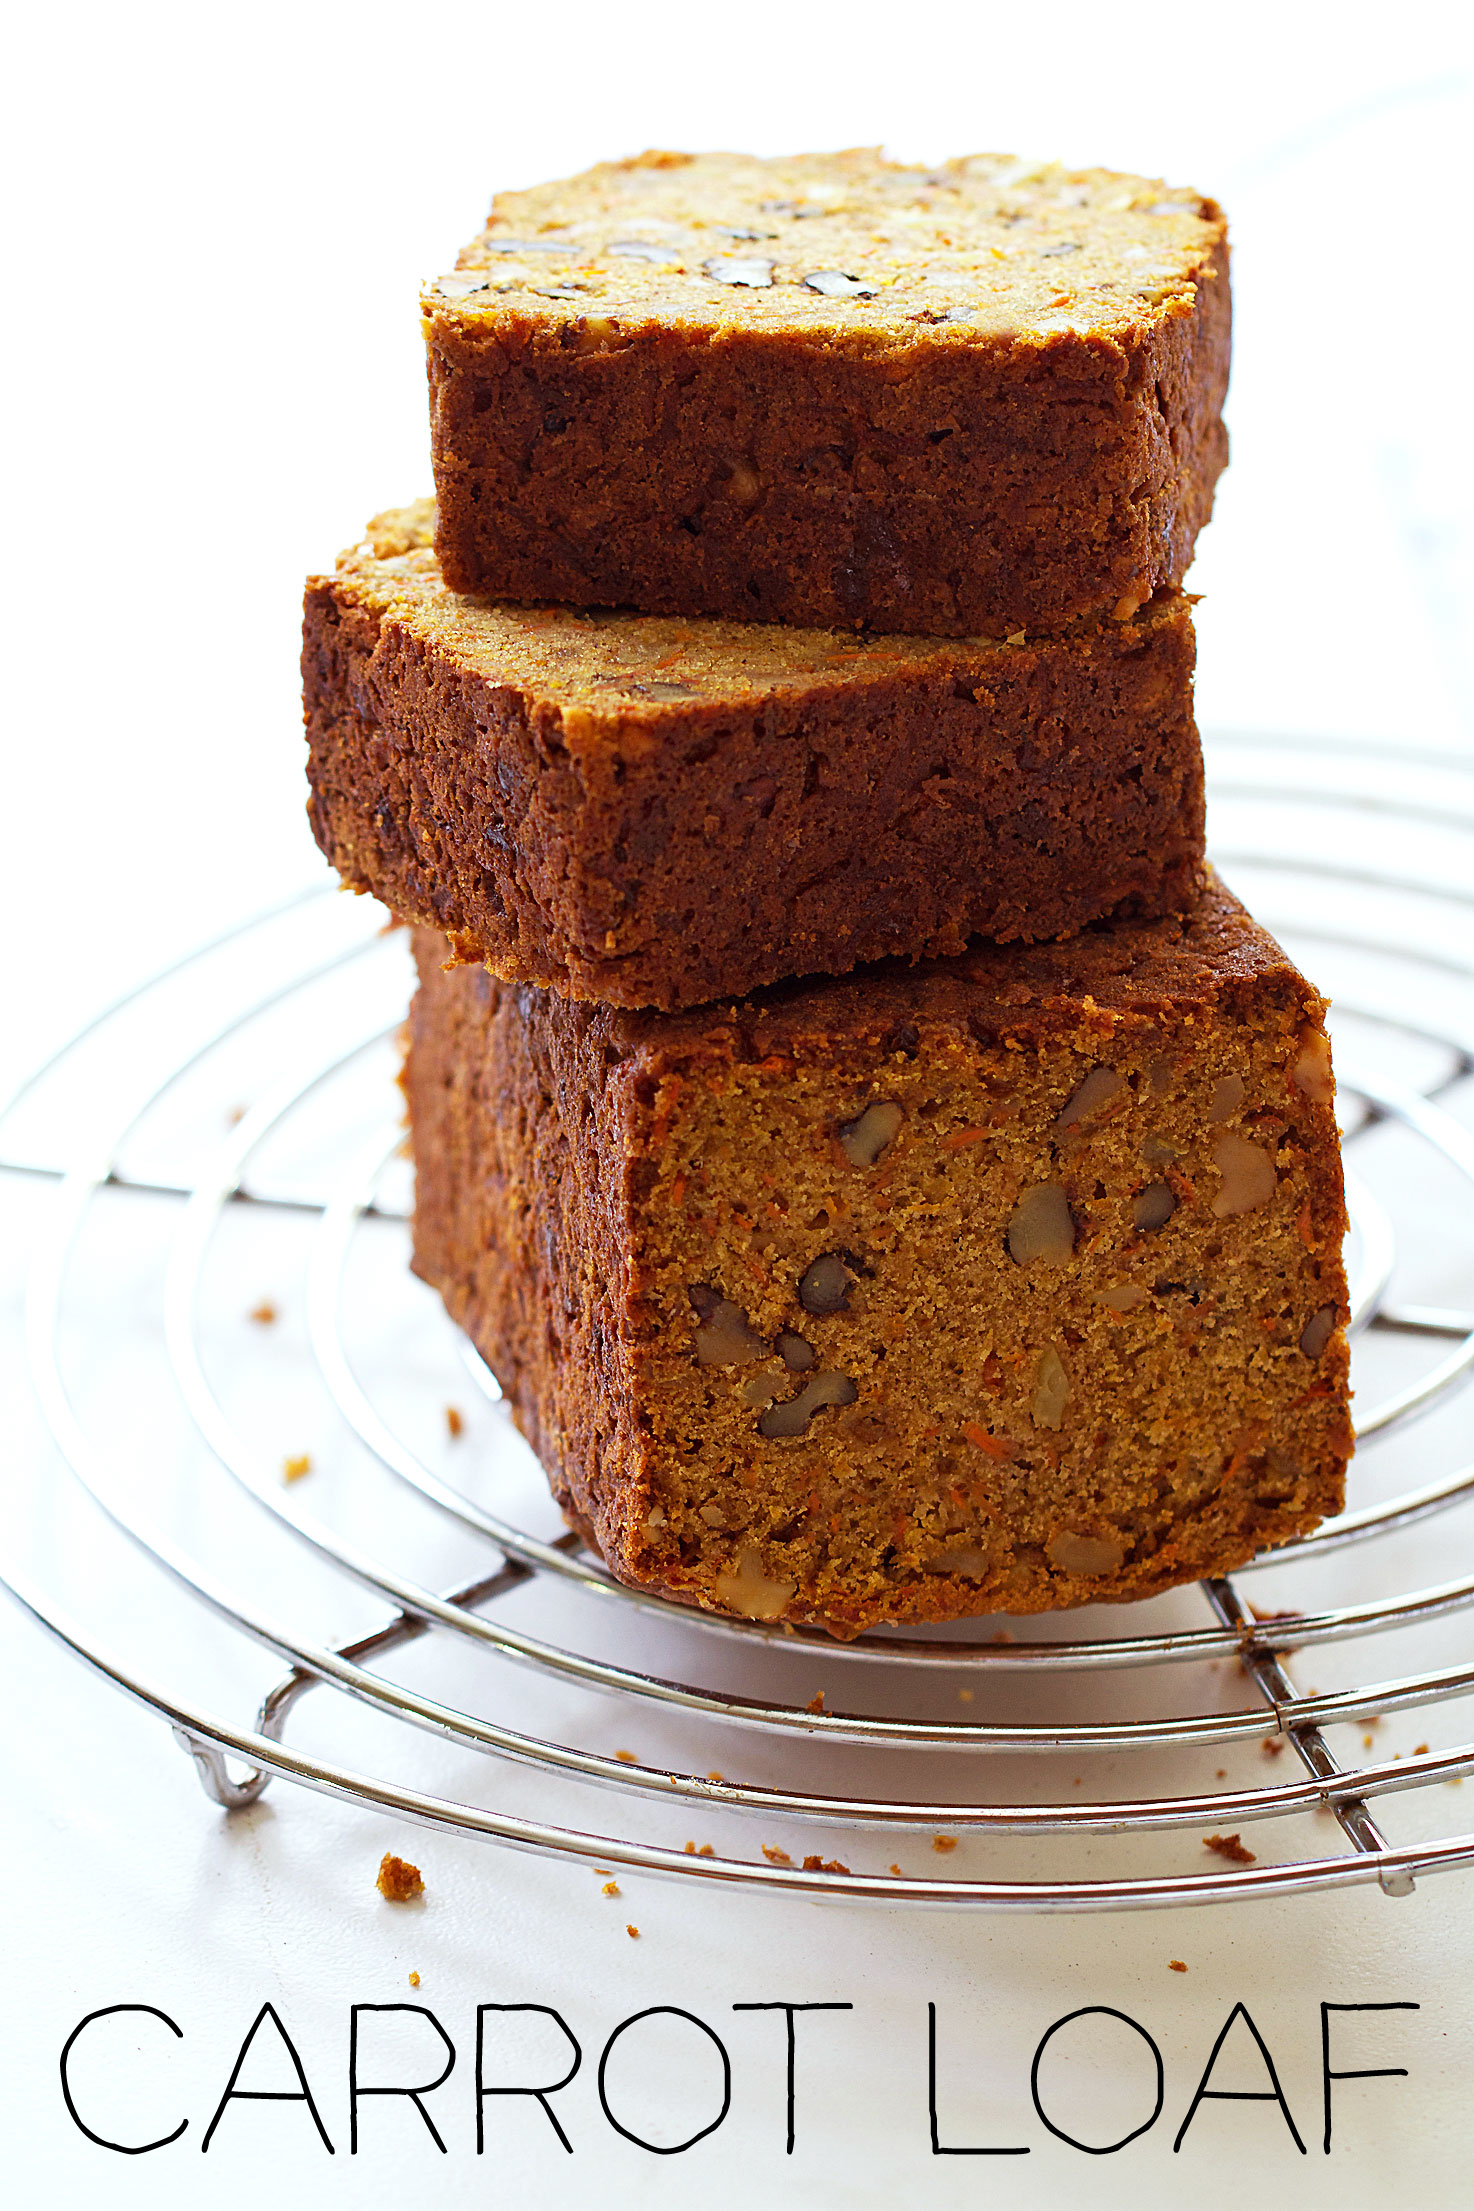 Carrot Loaf with Walnuts and Crystallized Ginger